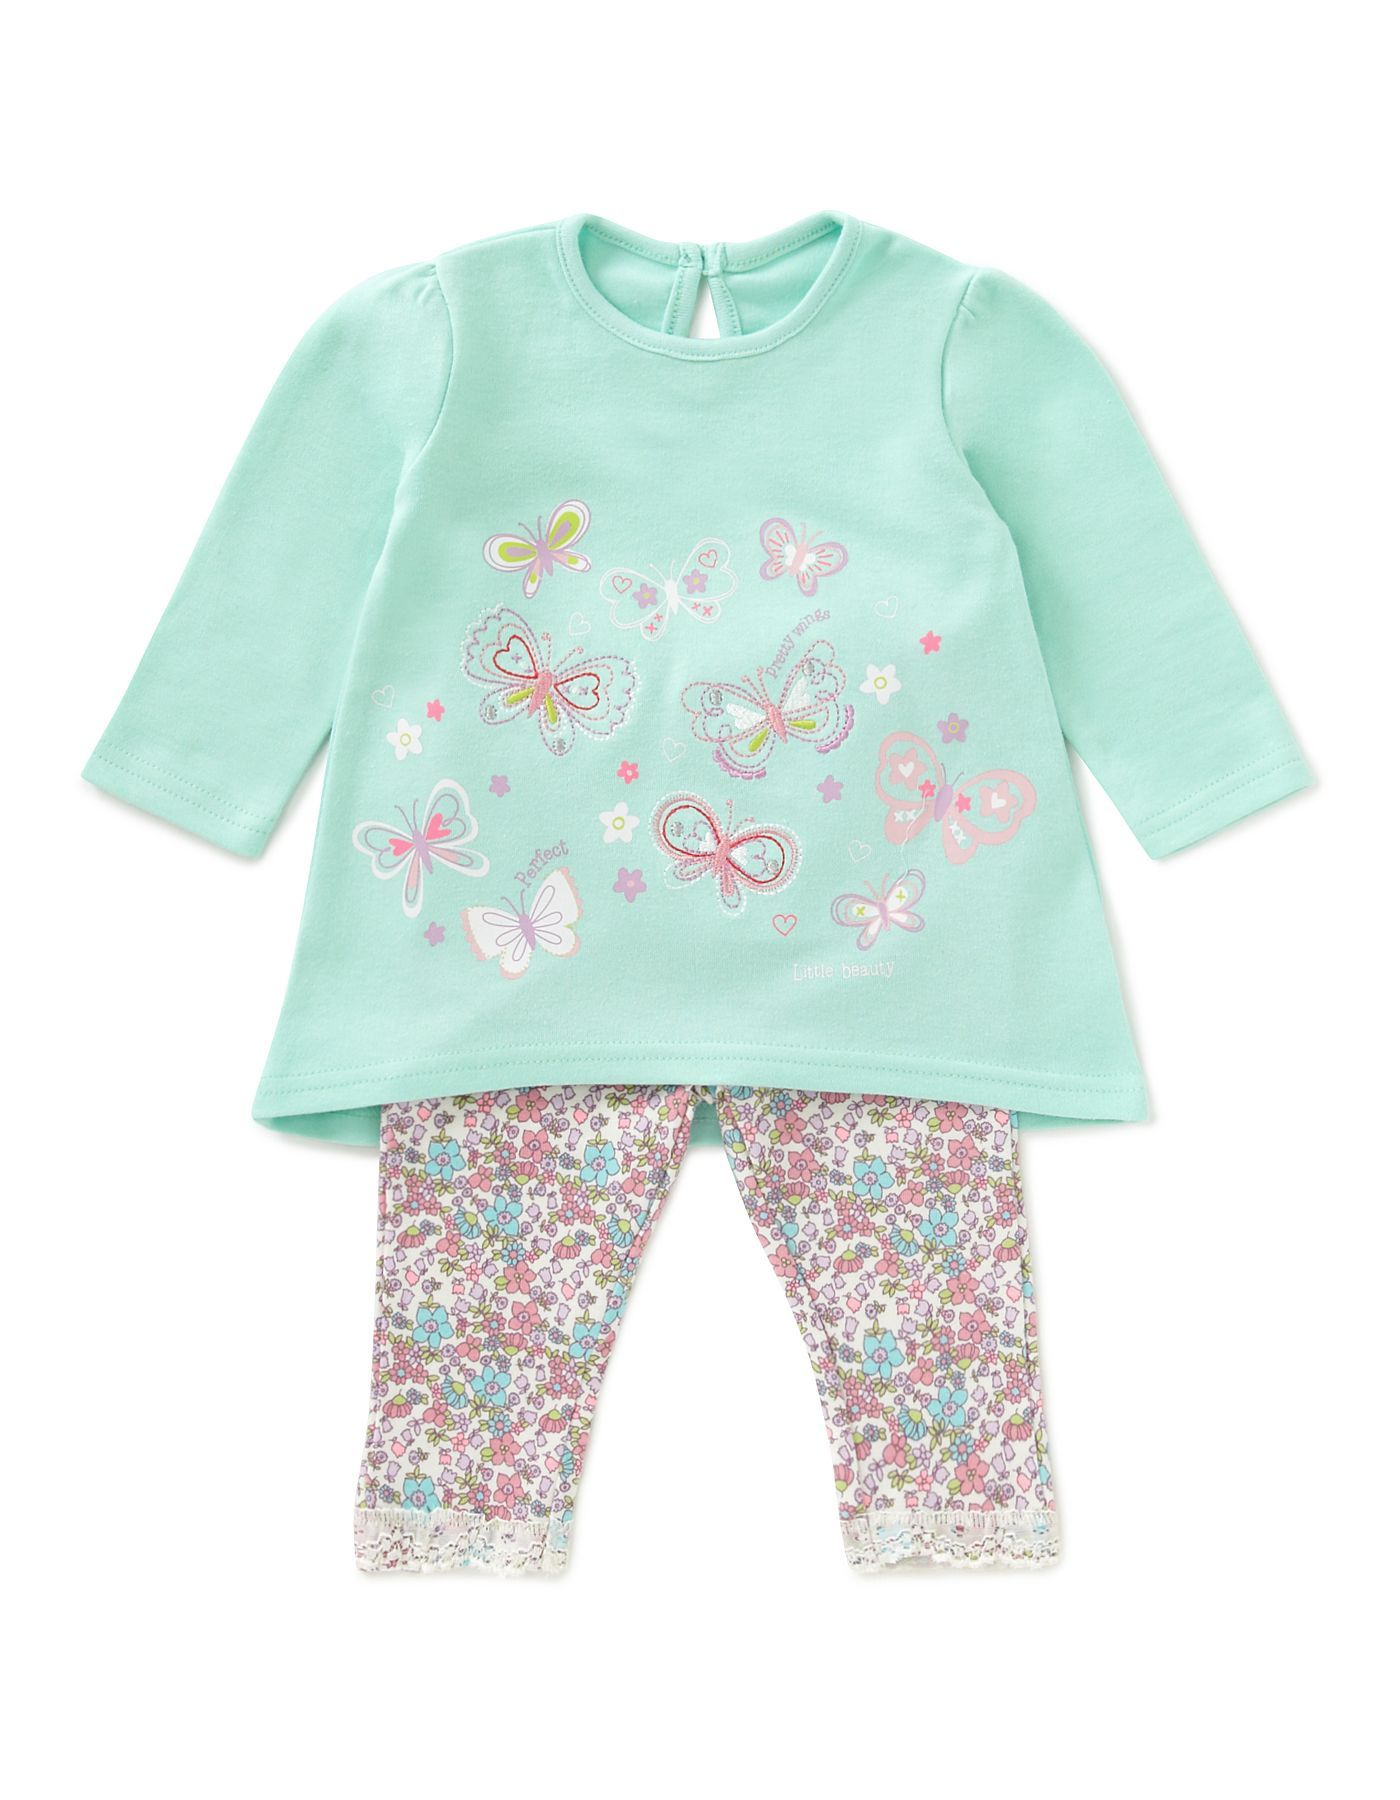 Floral Baby Outfit Baby George at ASDA Baby stuff